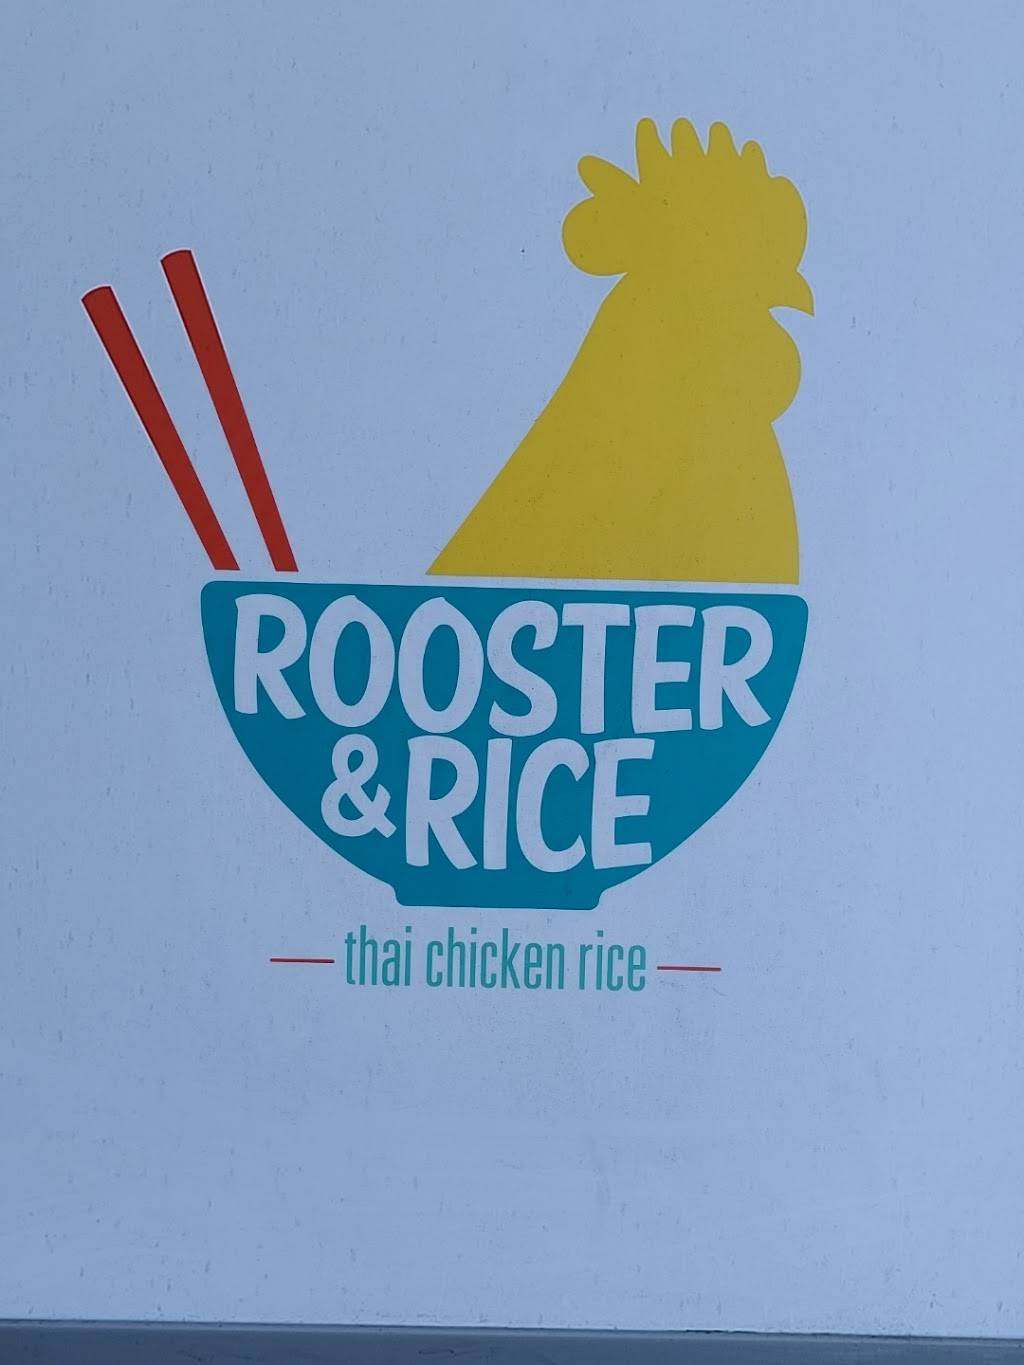 Rooster and Rice   restaurant   1 Stanyan St, San Francisco, CA 94118, USA   4157026364 OR +1 415-702-6364